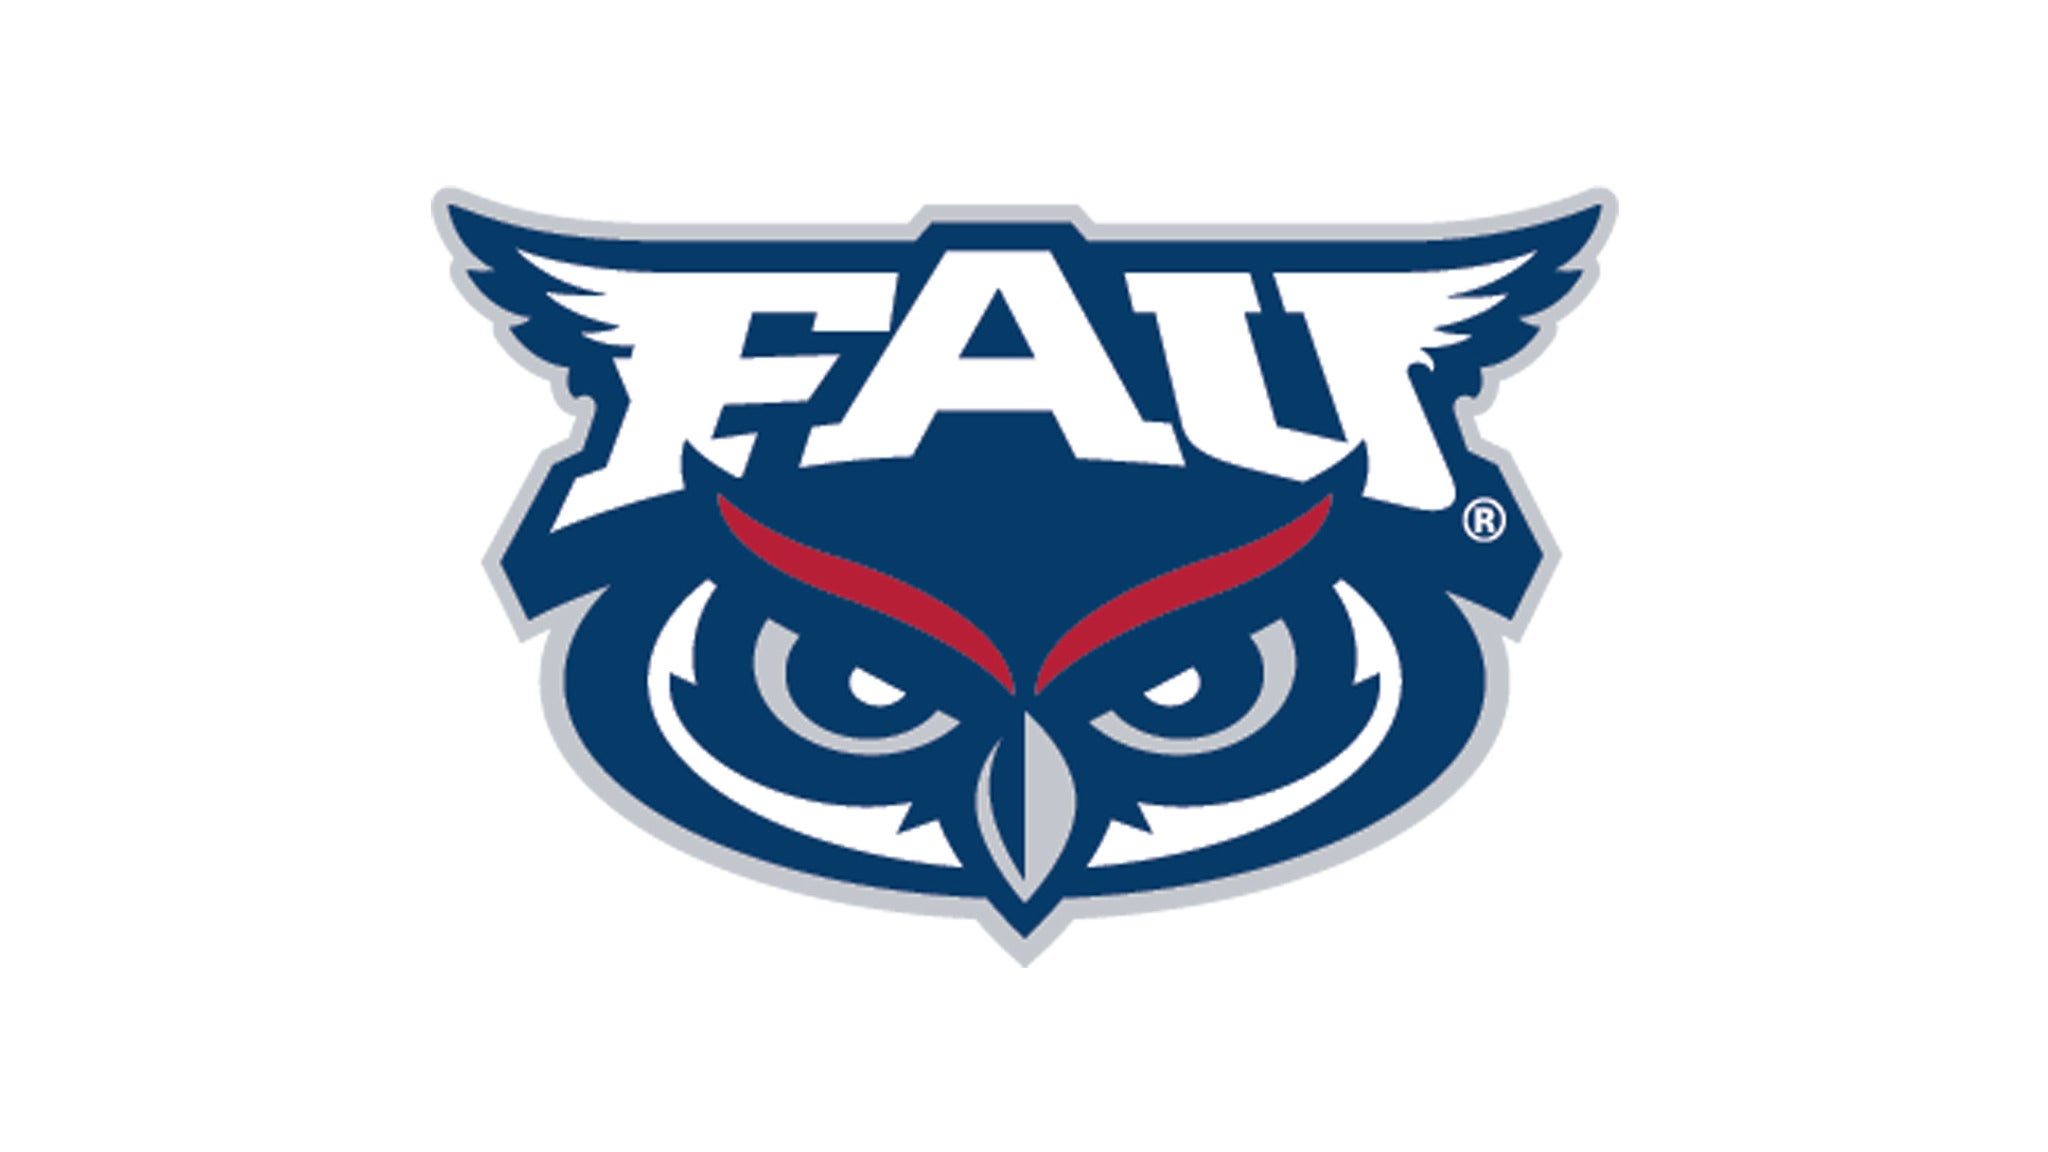 2019 - 2020 FAU Men's Basketball Season at FAU Arena